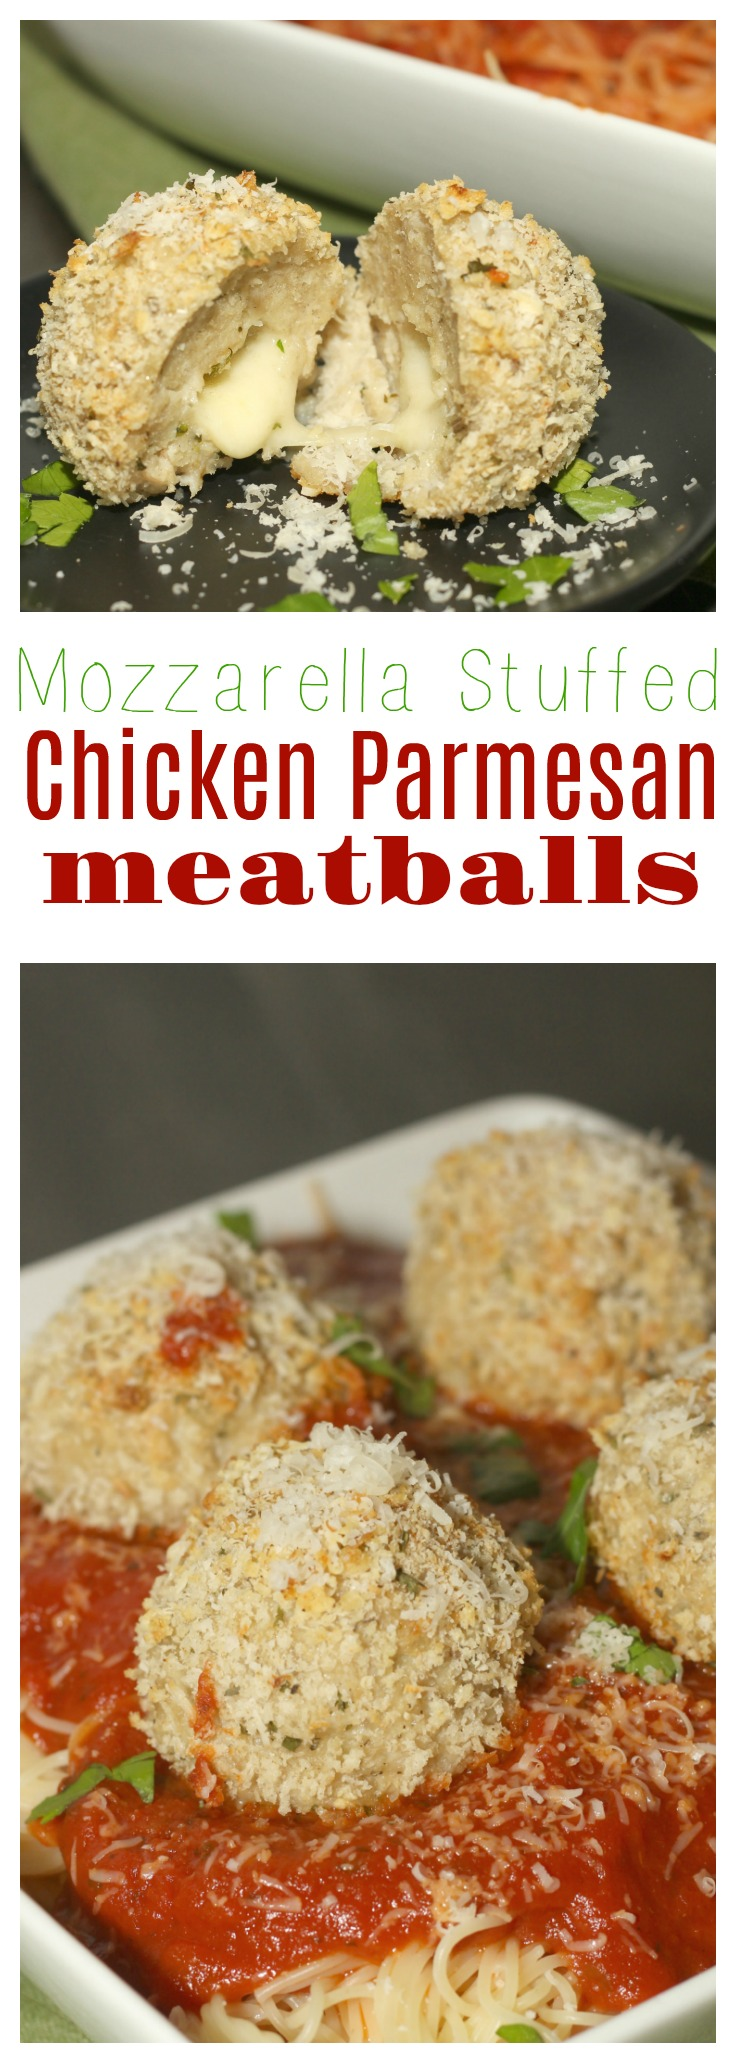 Mozzarella Stuffed Chicken Parmesan Meatballs